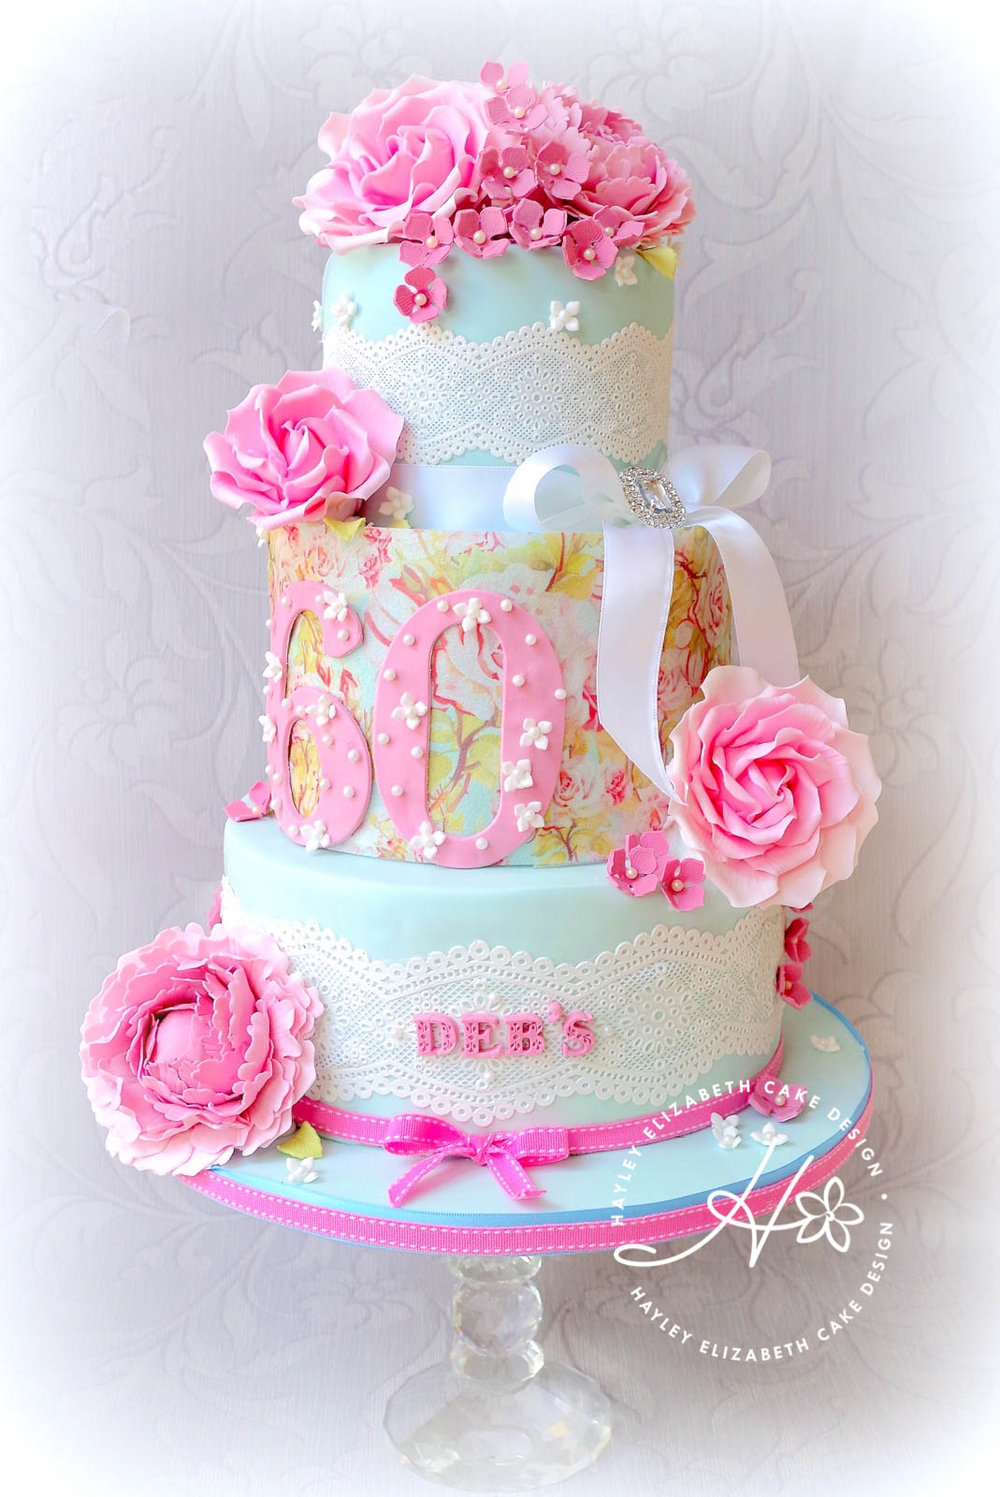 bright-rose-and-peony-birthday-cake.jpg